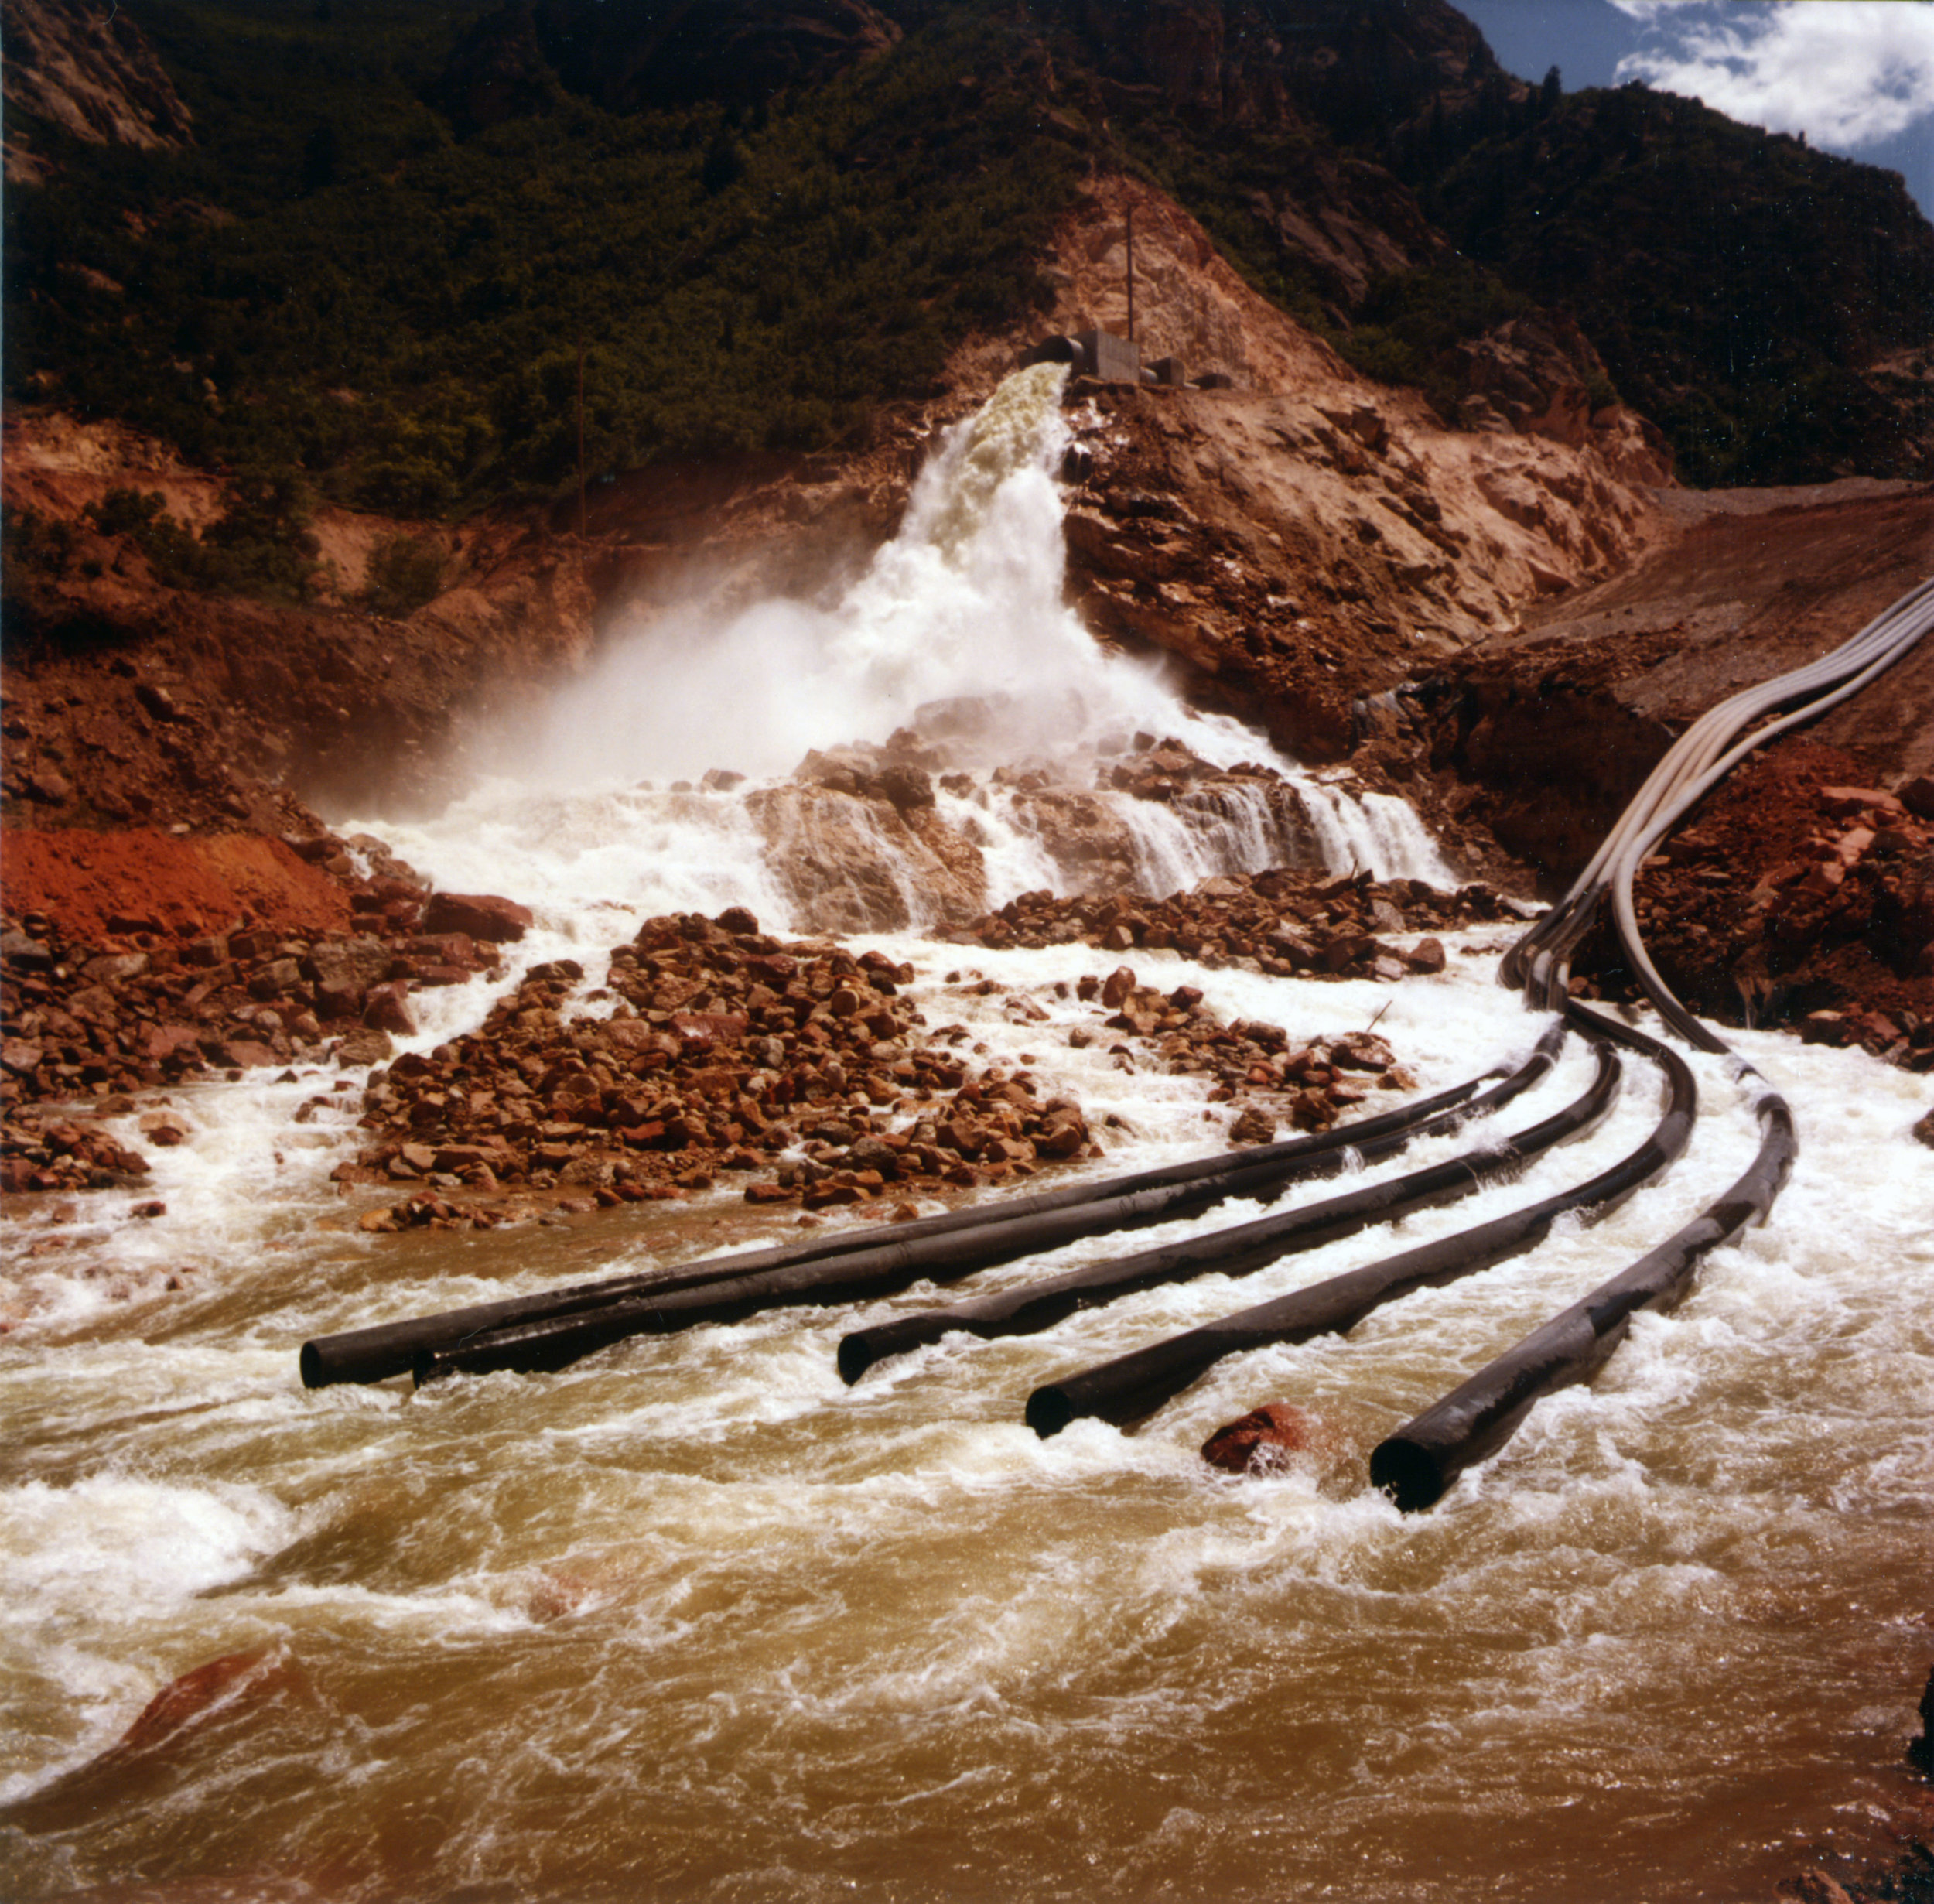 Water diversion projects to drain Thistle Lake in June 1983. Photo courtesy of the Utah State Archives and Records Service.